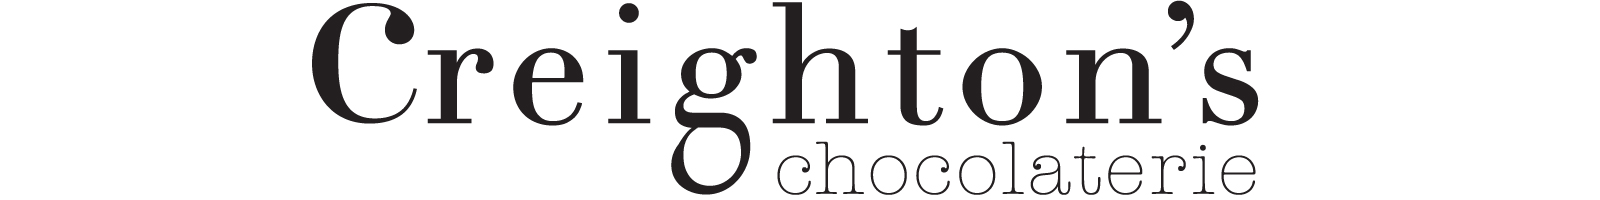 Creighton's Chocolaterie